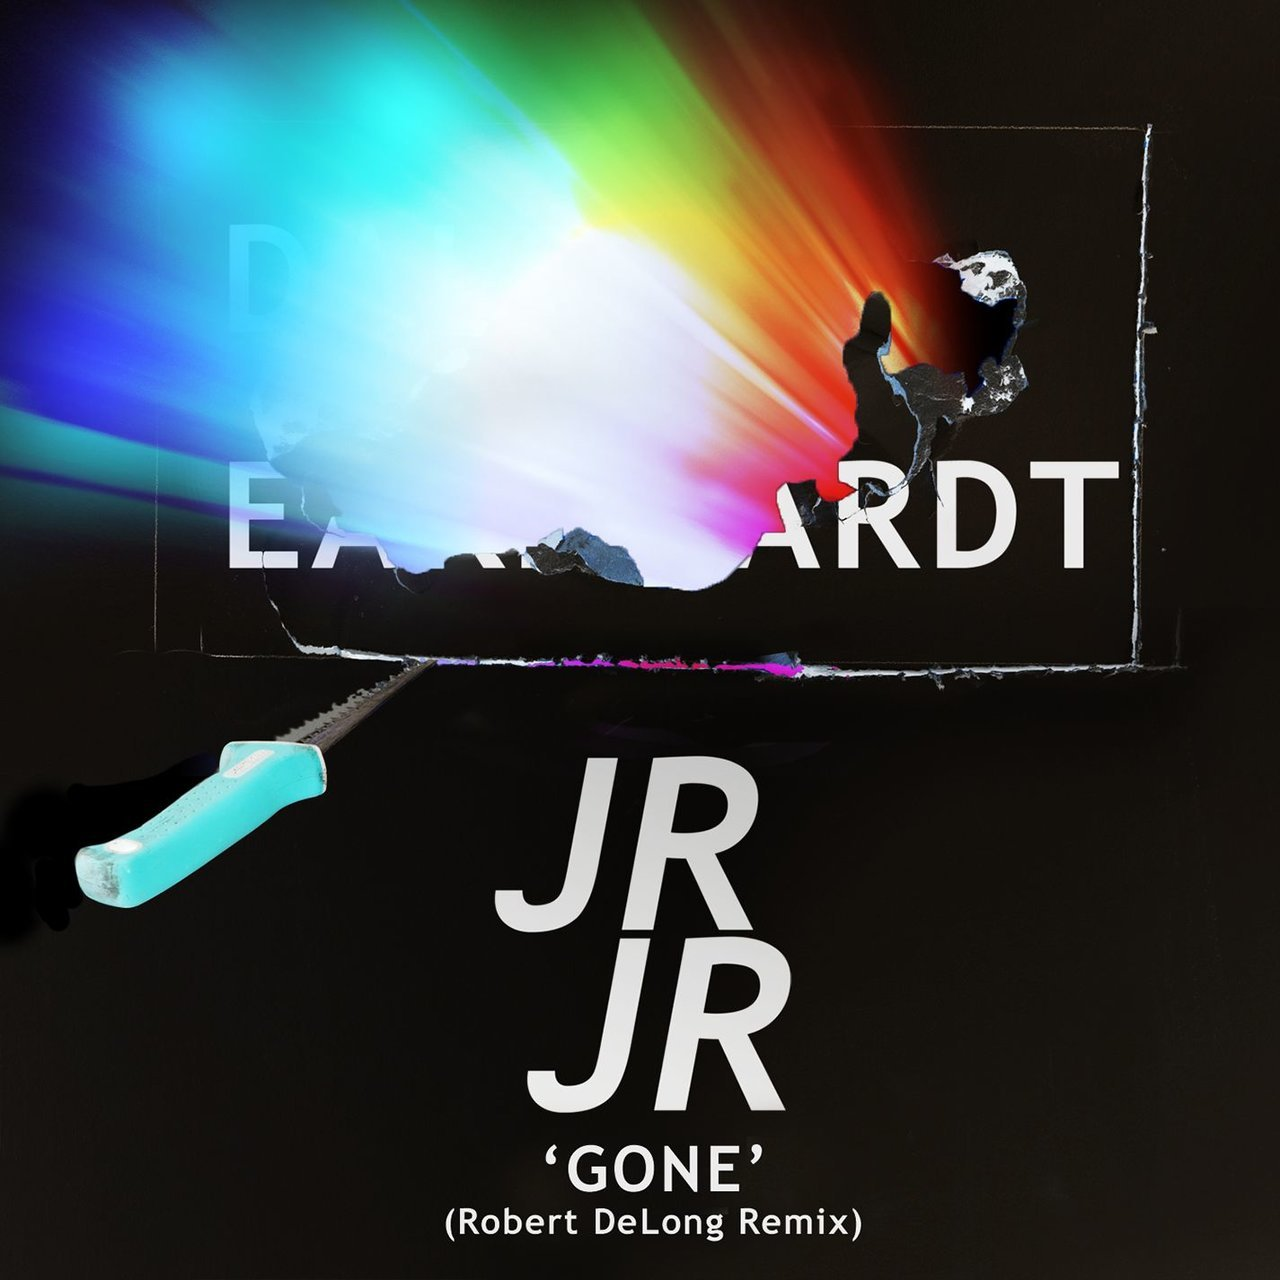 Gone (Robert DeLong Remix)